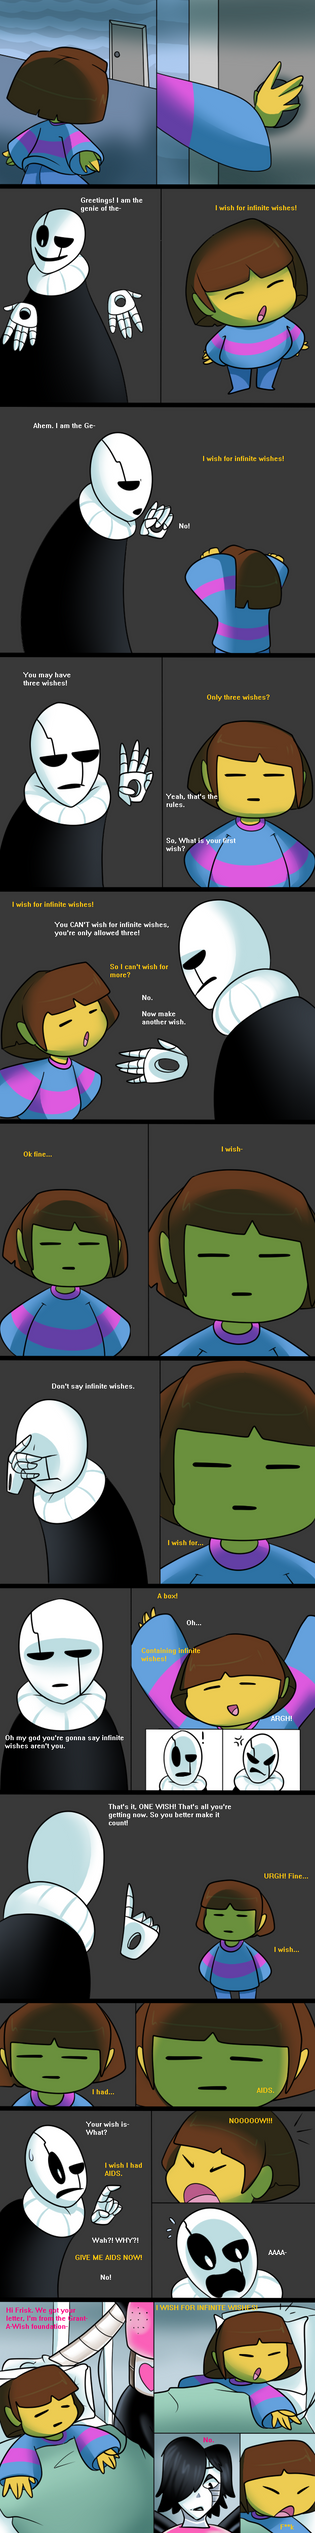 Undertale - The Wish Comic by SerifDraws